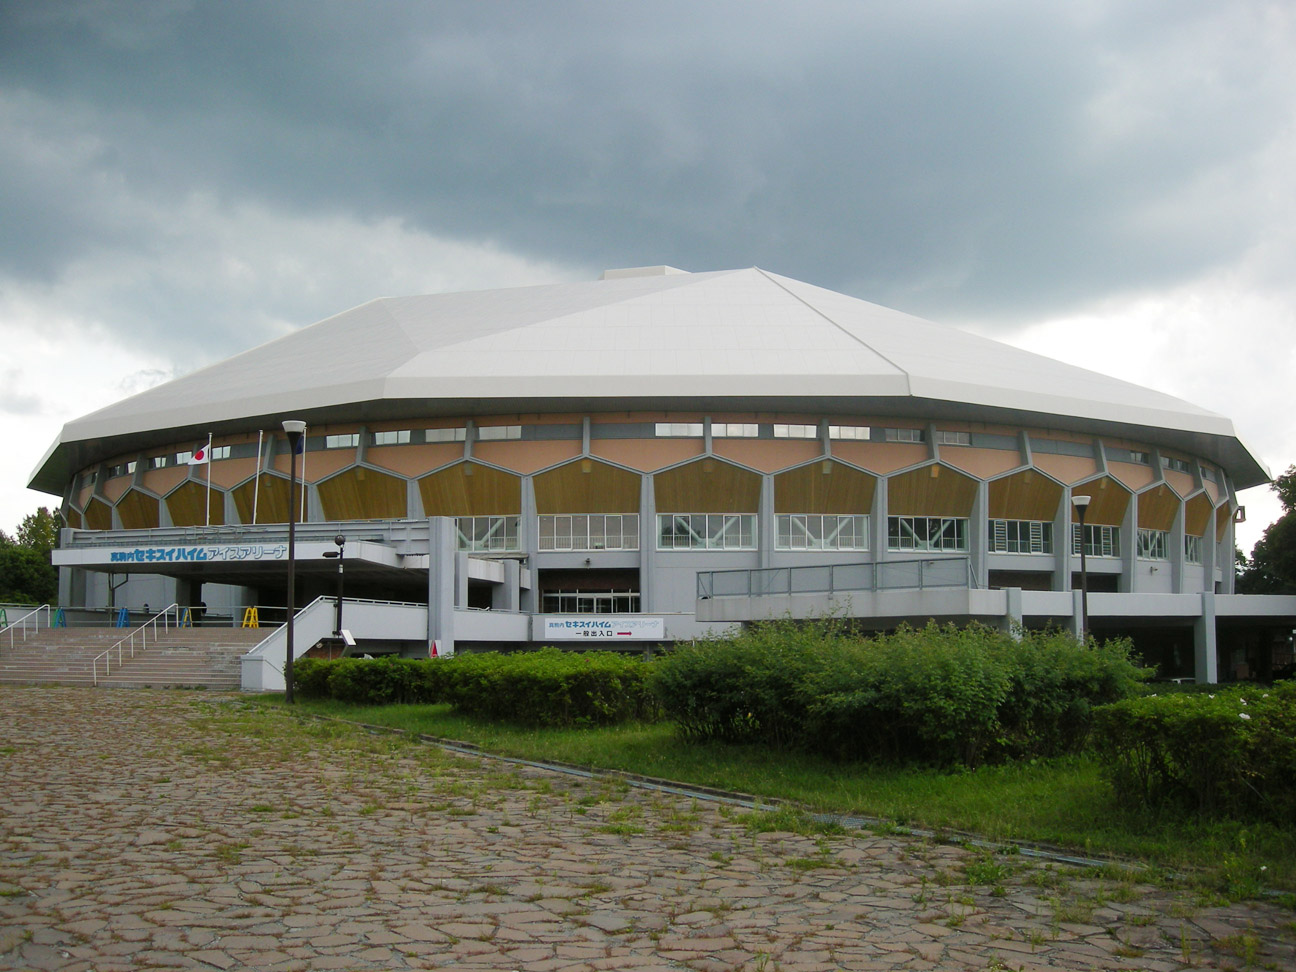 https://upload.wikimedia.org/wikipedia/commons/d/dc/Makomanai_Ice_Arena.jpg